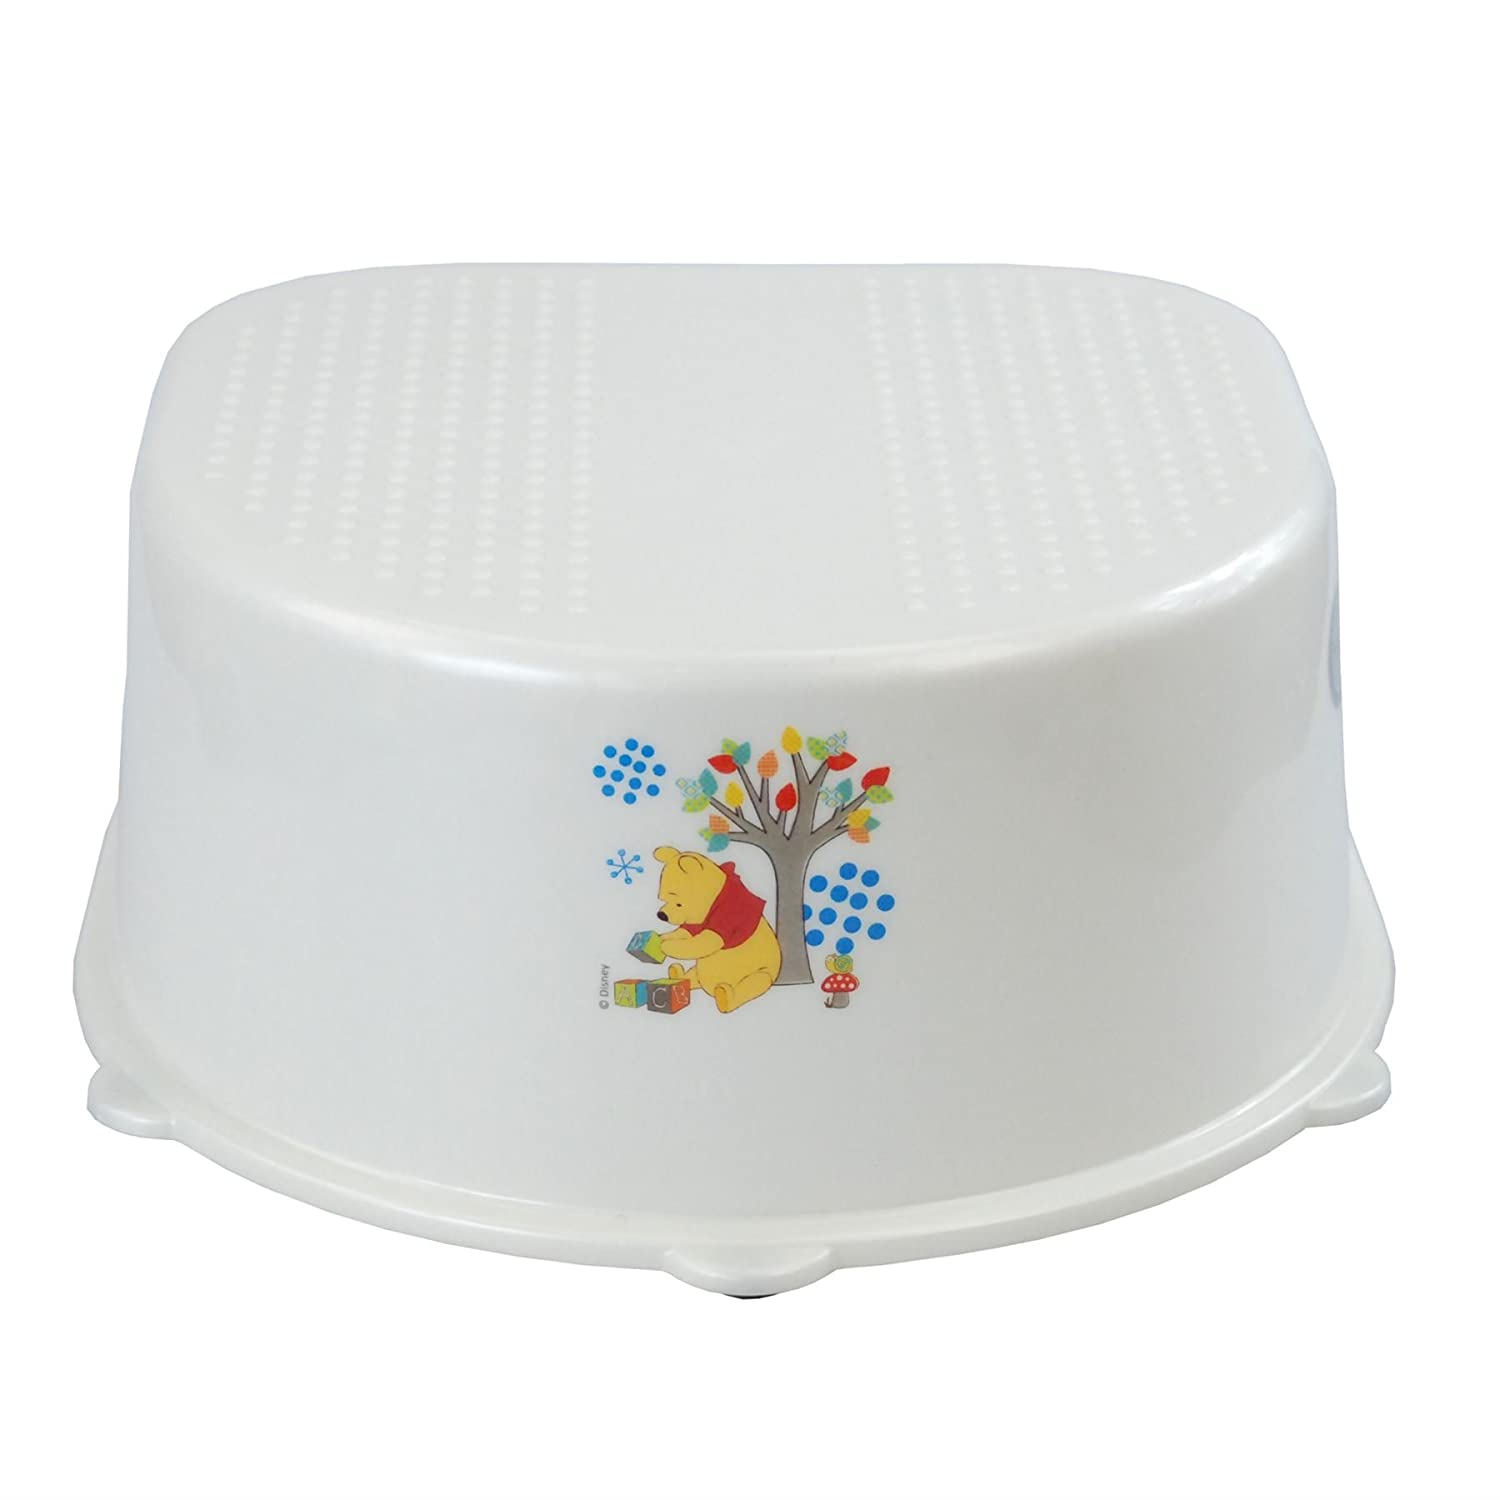 Disney® Winnie The Pooh Child Infant Unisex Step Stool Potty Training Aid Safe Plastic Non Slip Bathroom Toilet Sink Stool